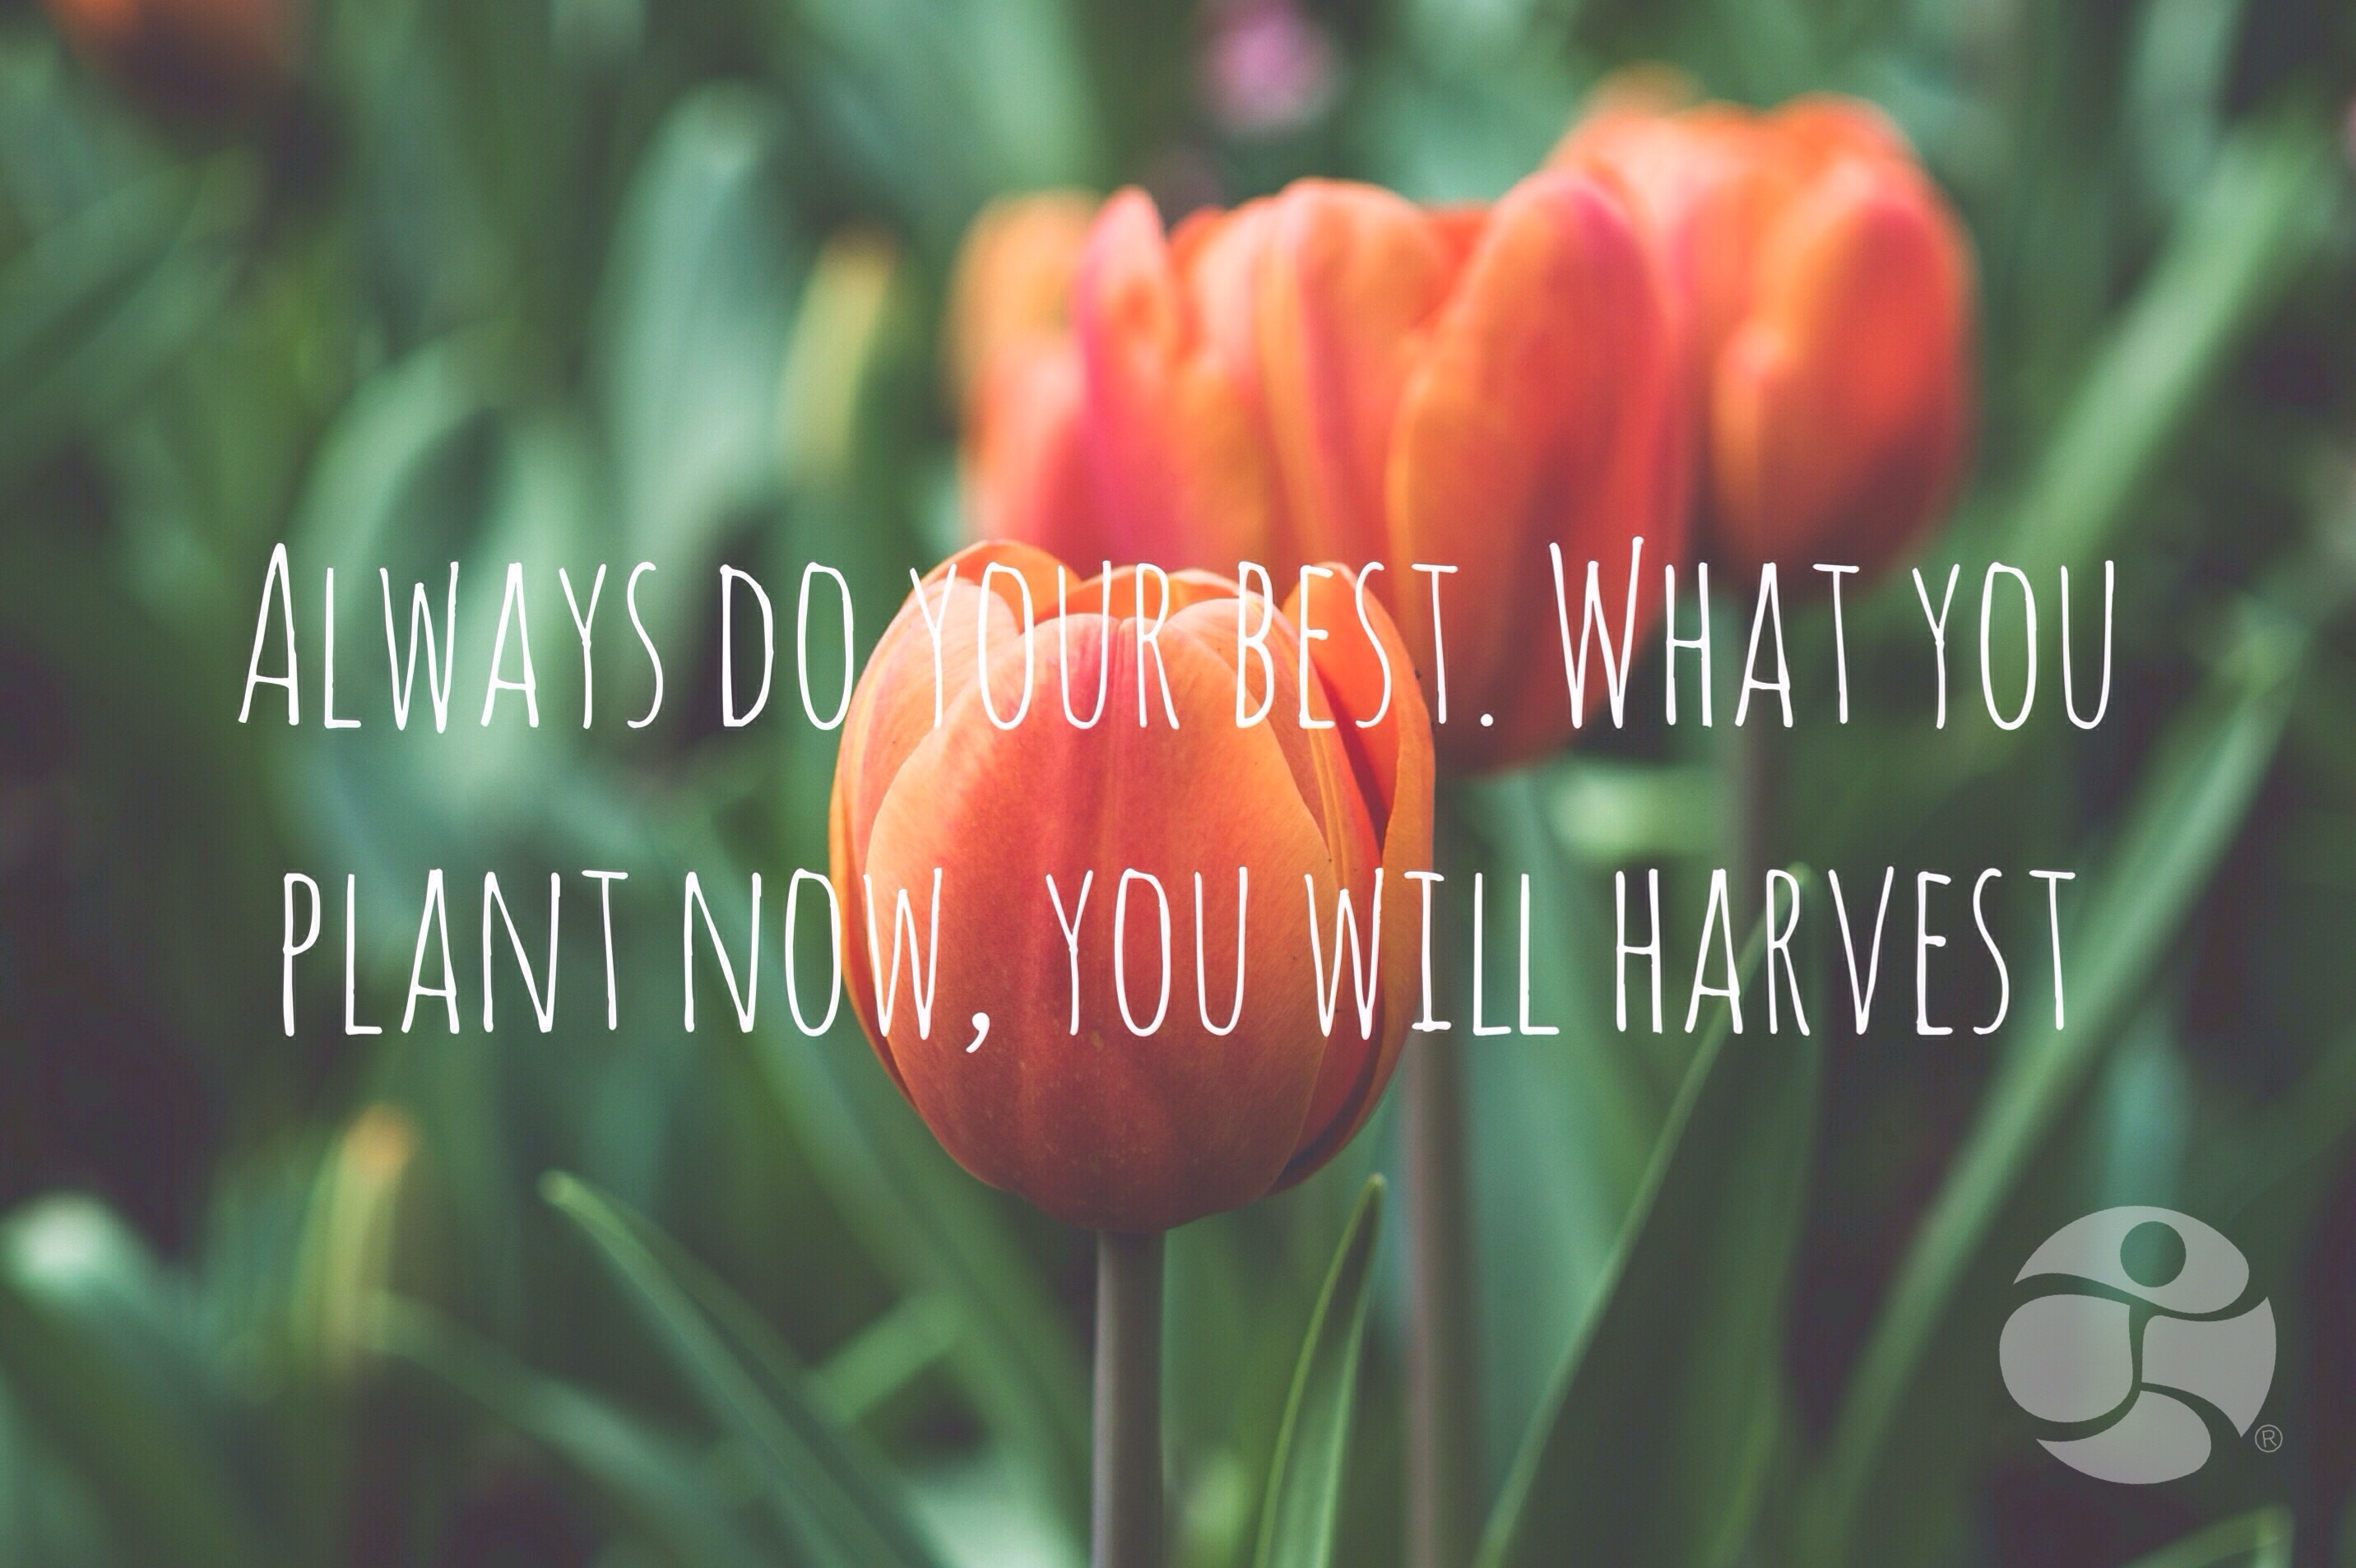 Always-do-your-best-what-you-plant-now-you-will-harvest